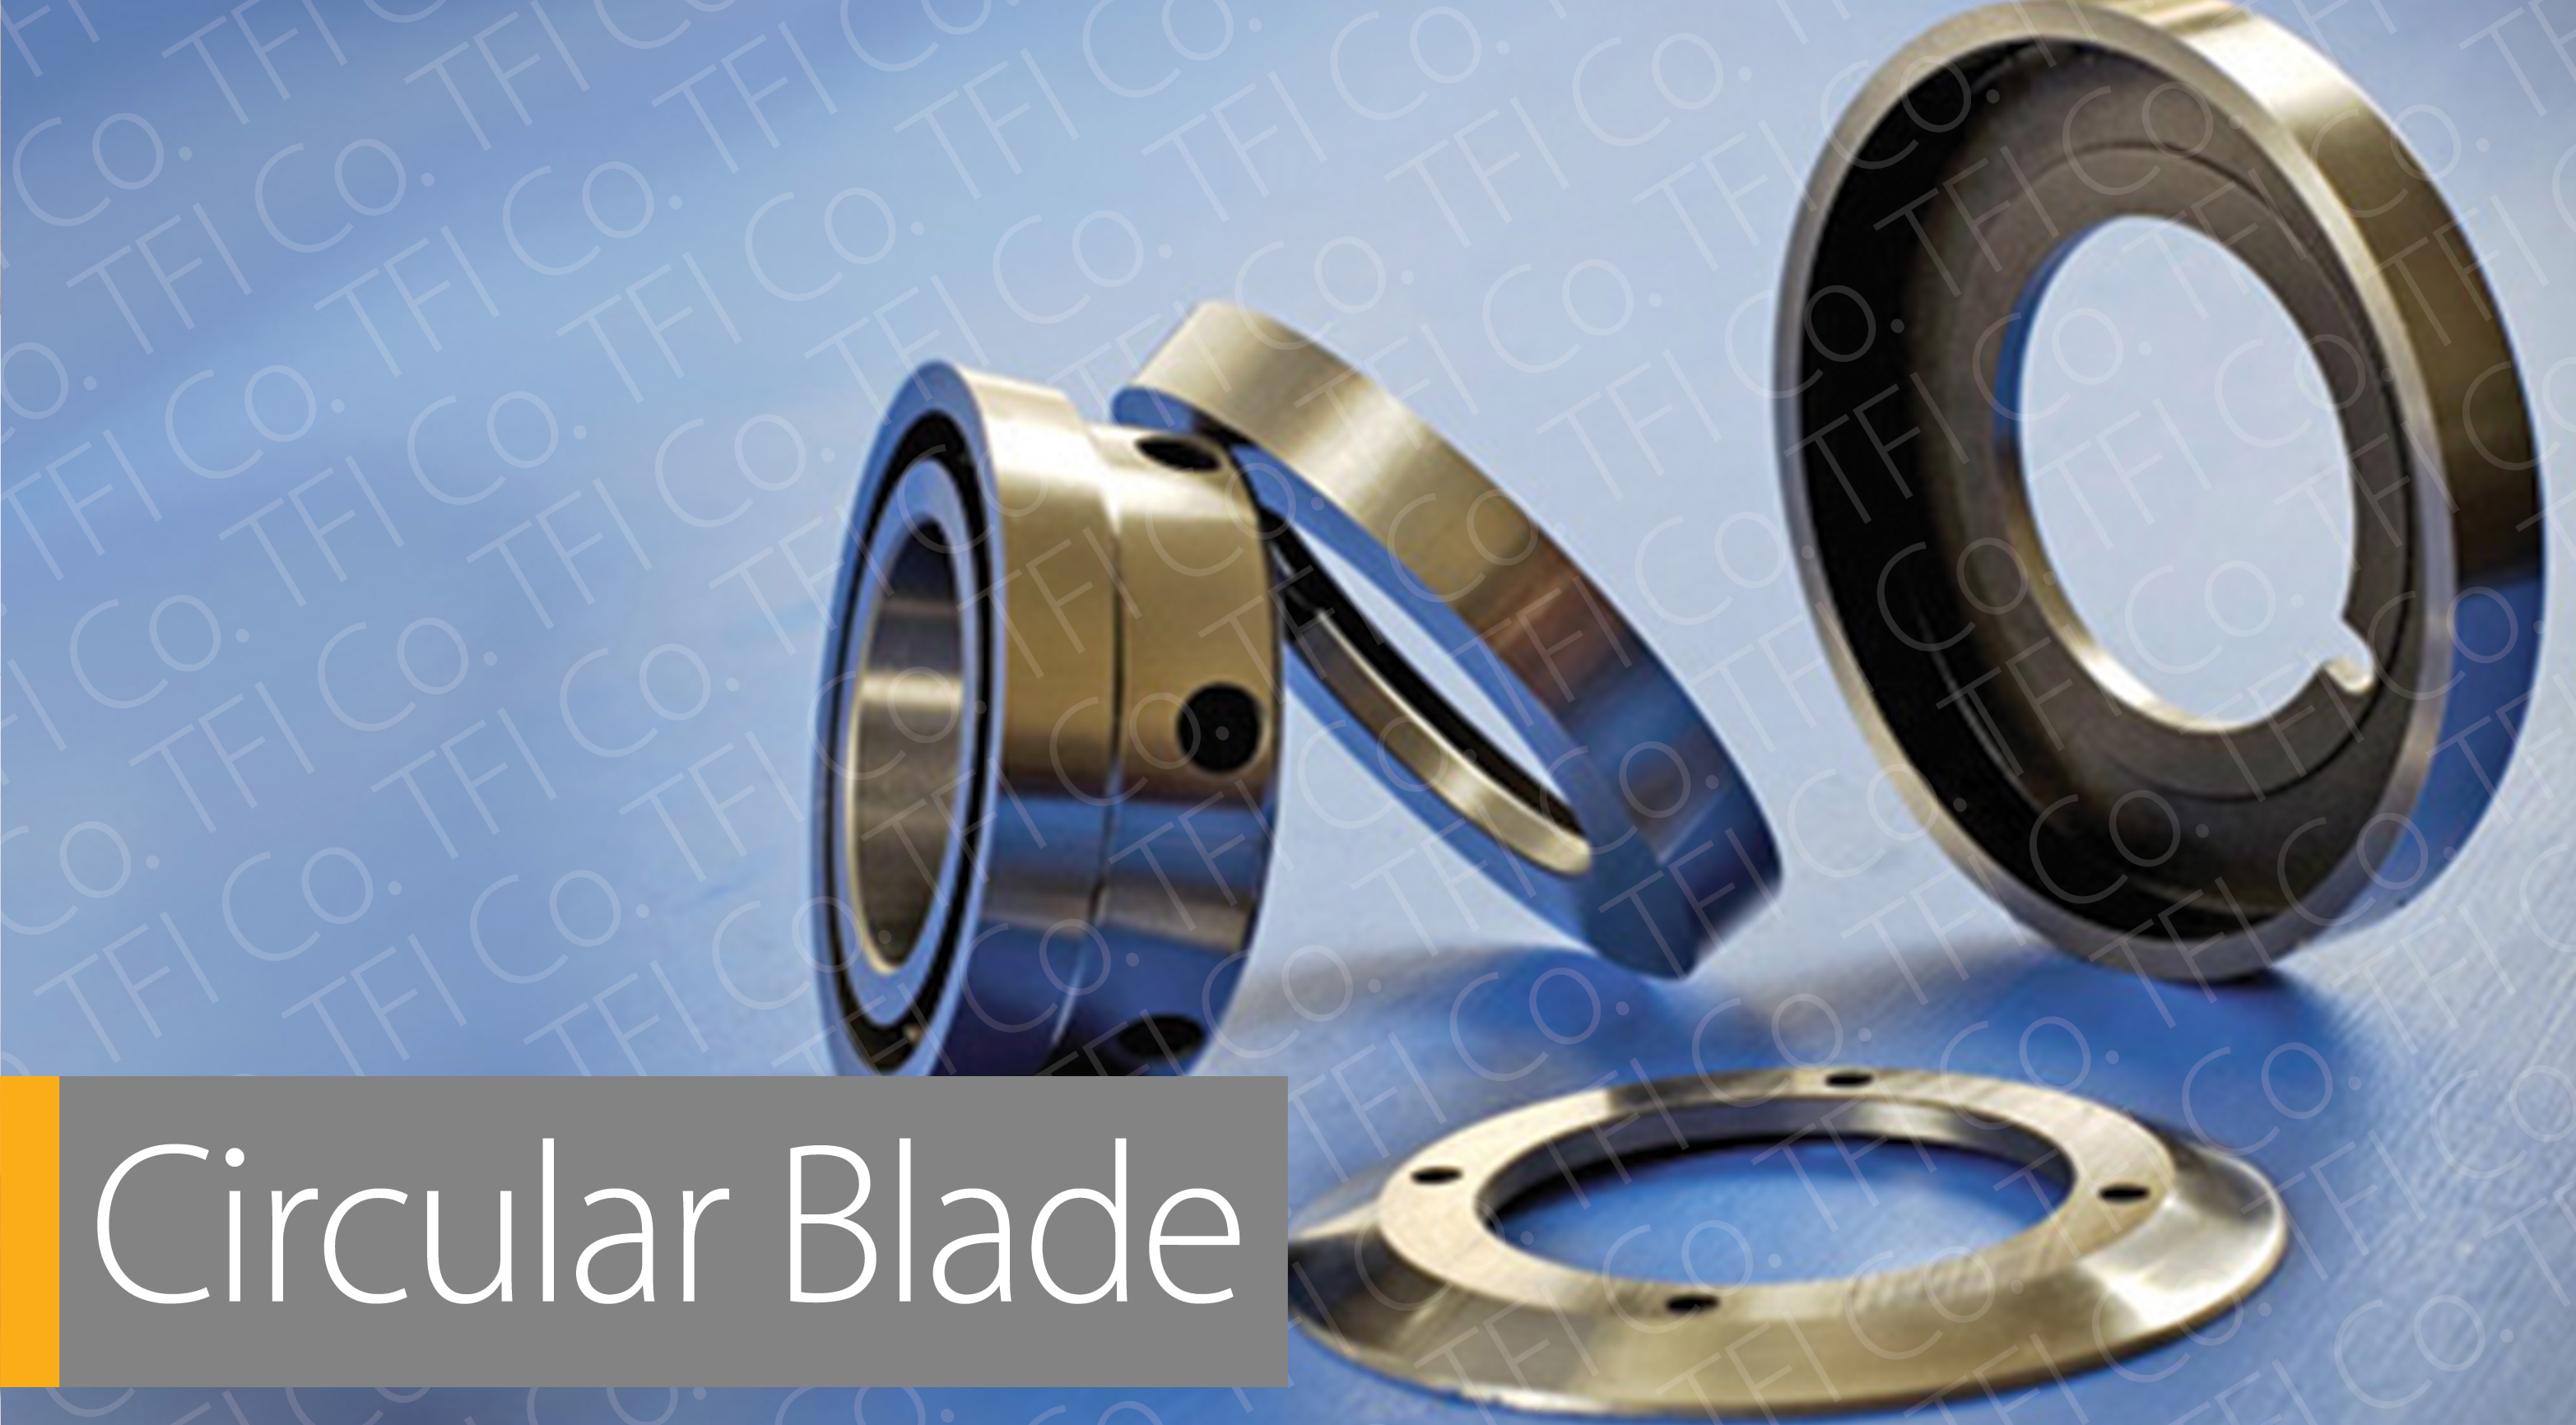 BT_Slider_simple05, circular blades for tissue industry, carton cutting and arch corrugated blades,  Progressive Die TFI Co, Steel Blades manufacturer Bending tools and Press Braking Punch and die shear Blades and Machine knives in UAE and Saudi Arabia ,